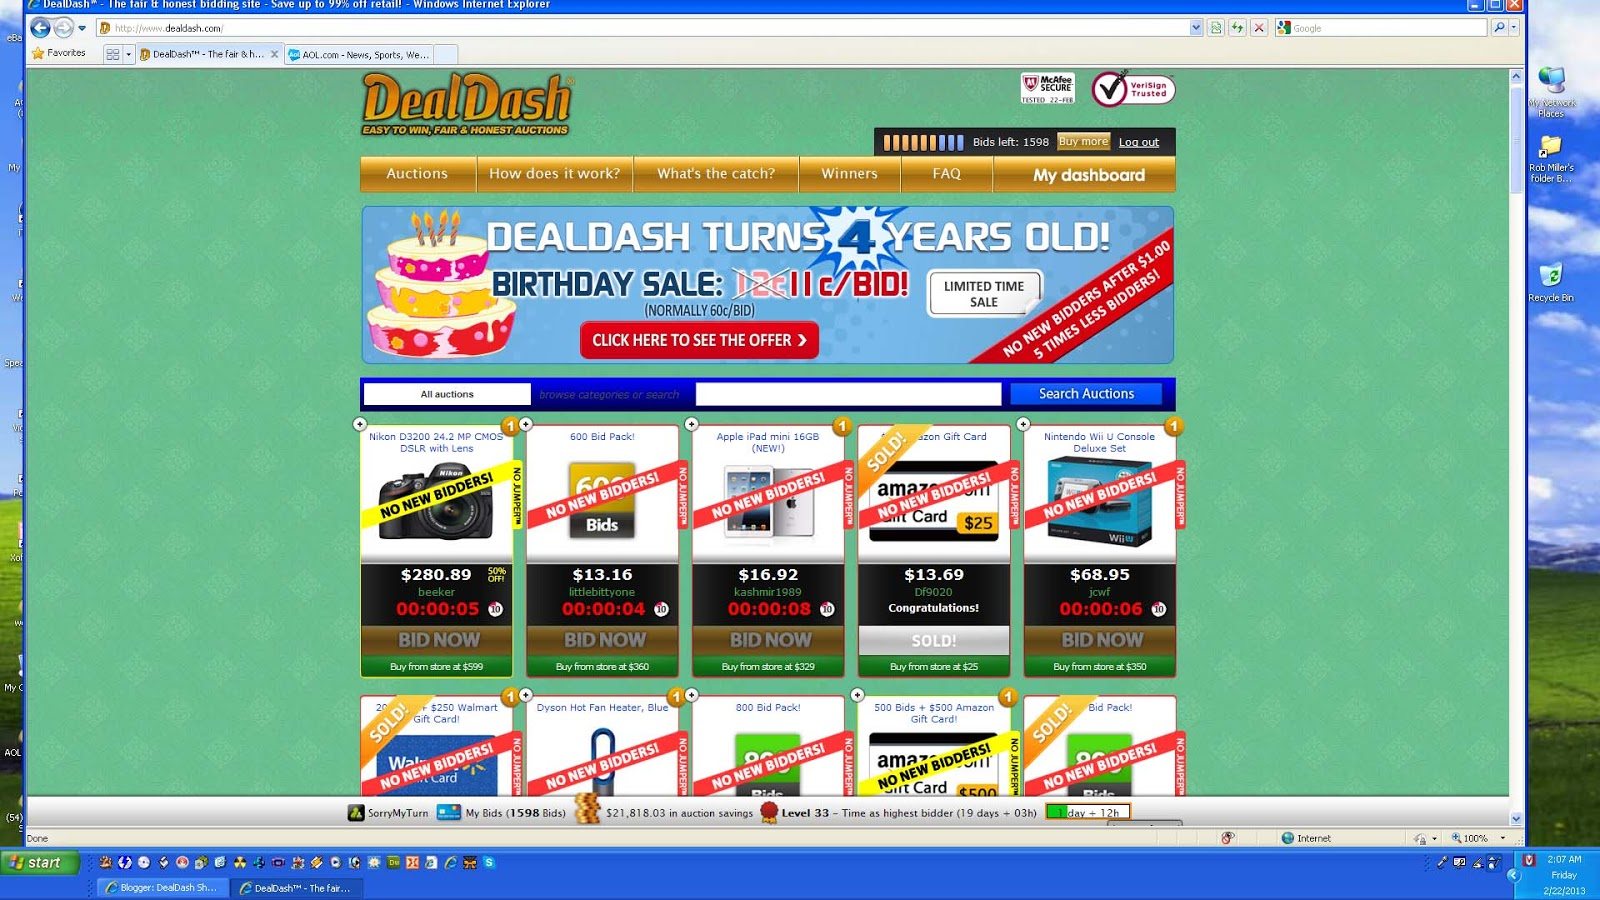 DealDash Shopping Another Successful Year